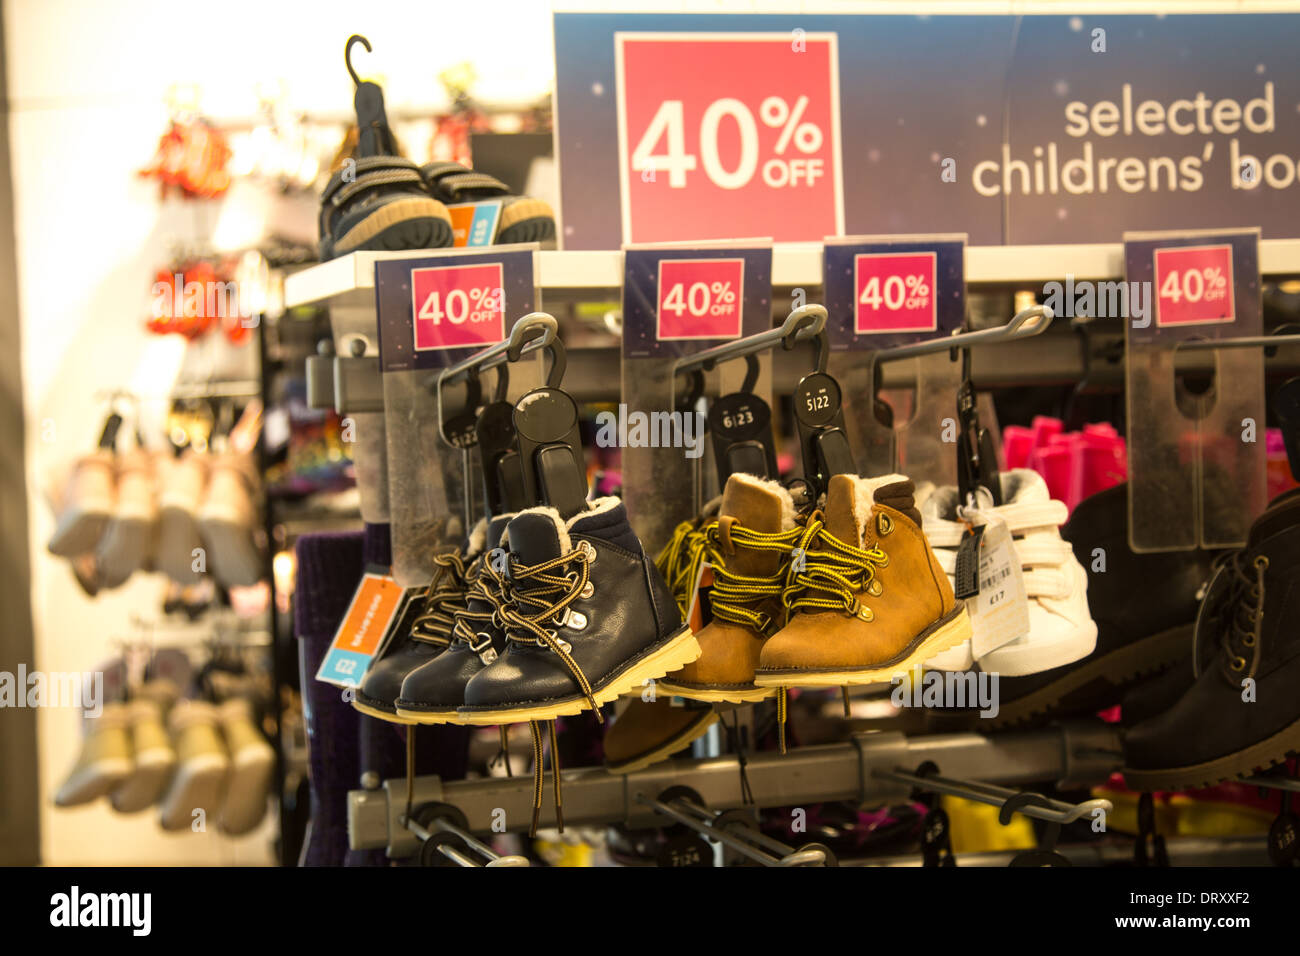 Kids Shoes and Boots on sale at